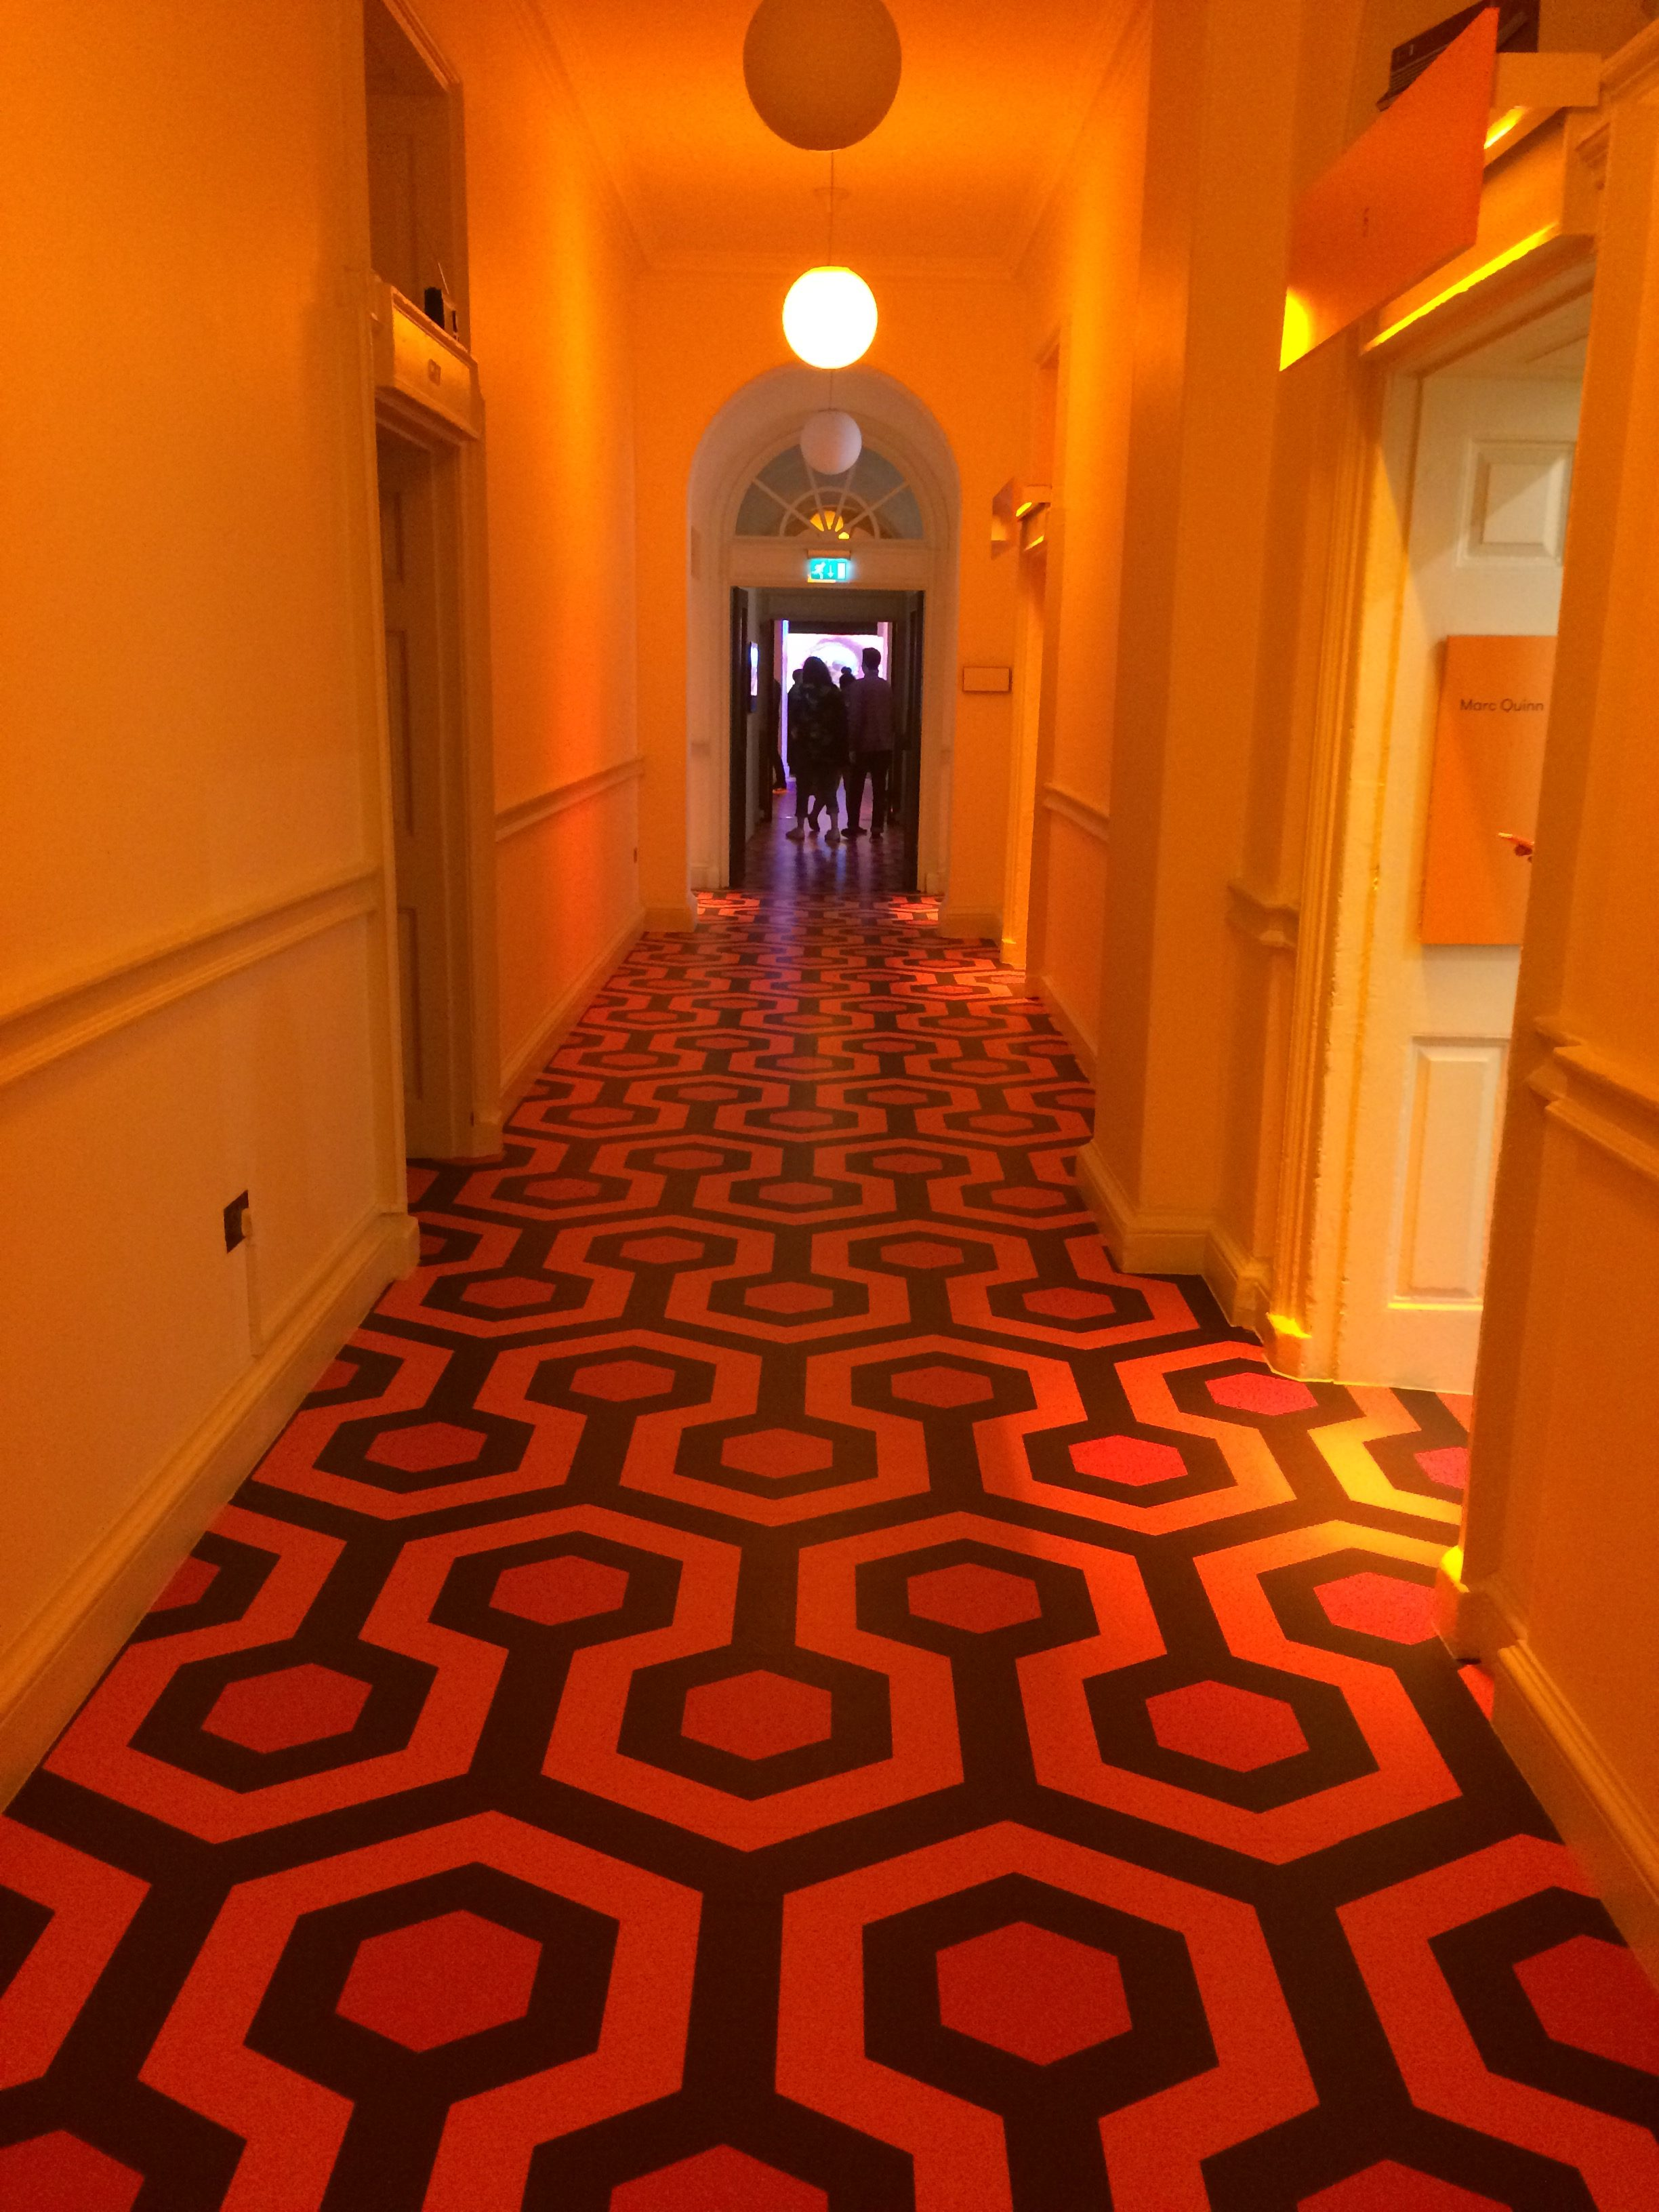 Interior Design Furniture Templates Daydreaming With Stanley Kubrick Carpet The Shining Film